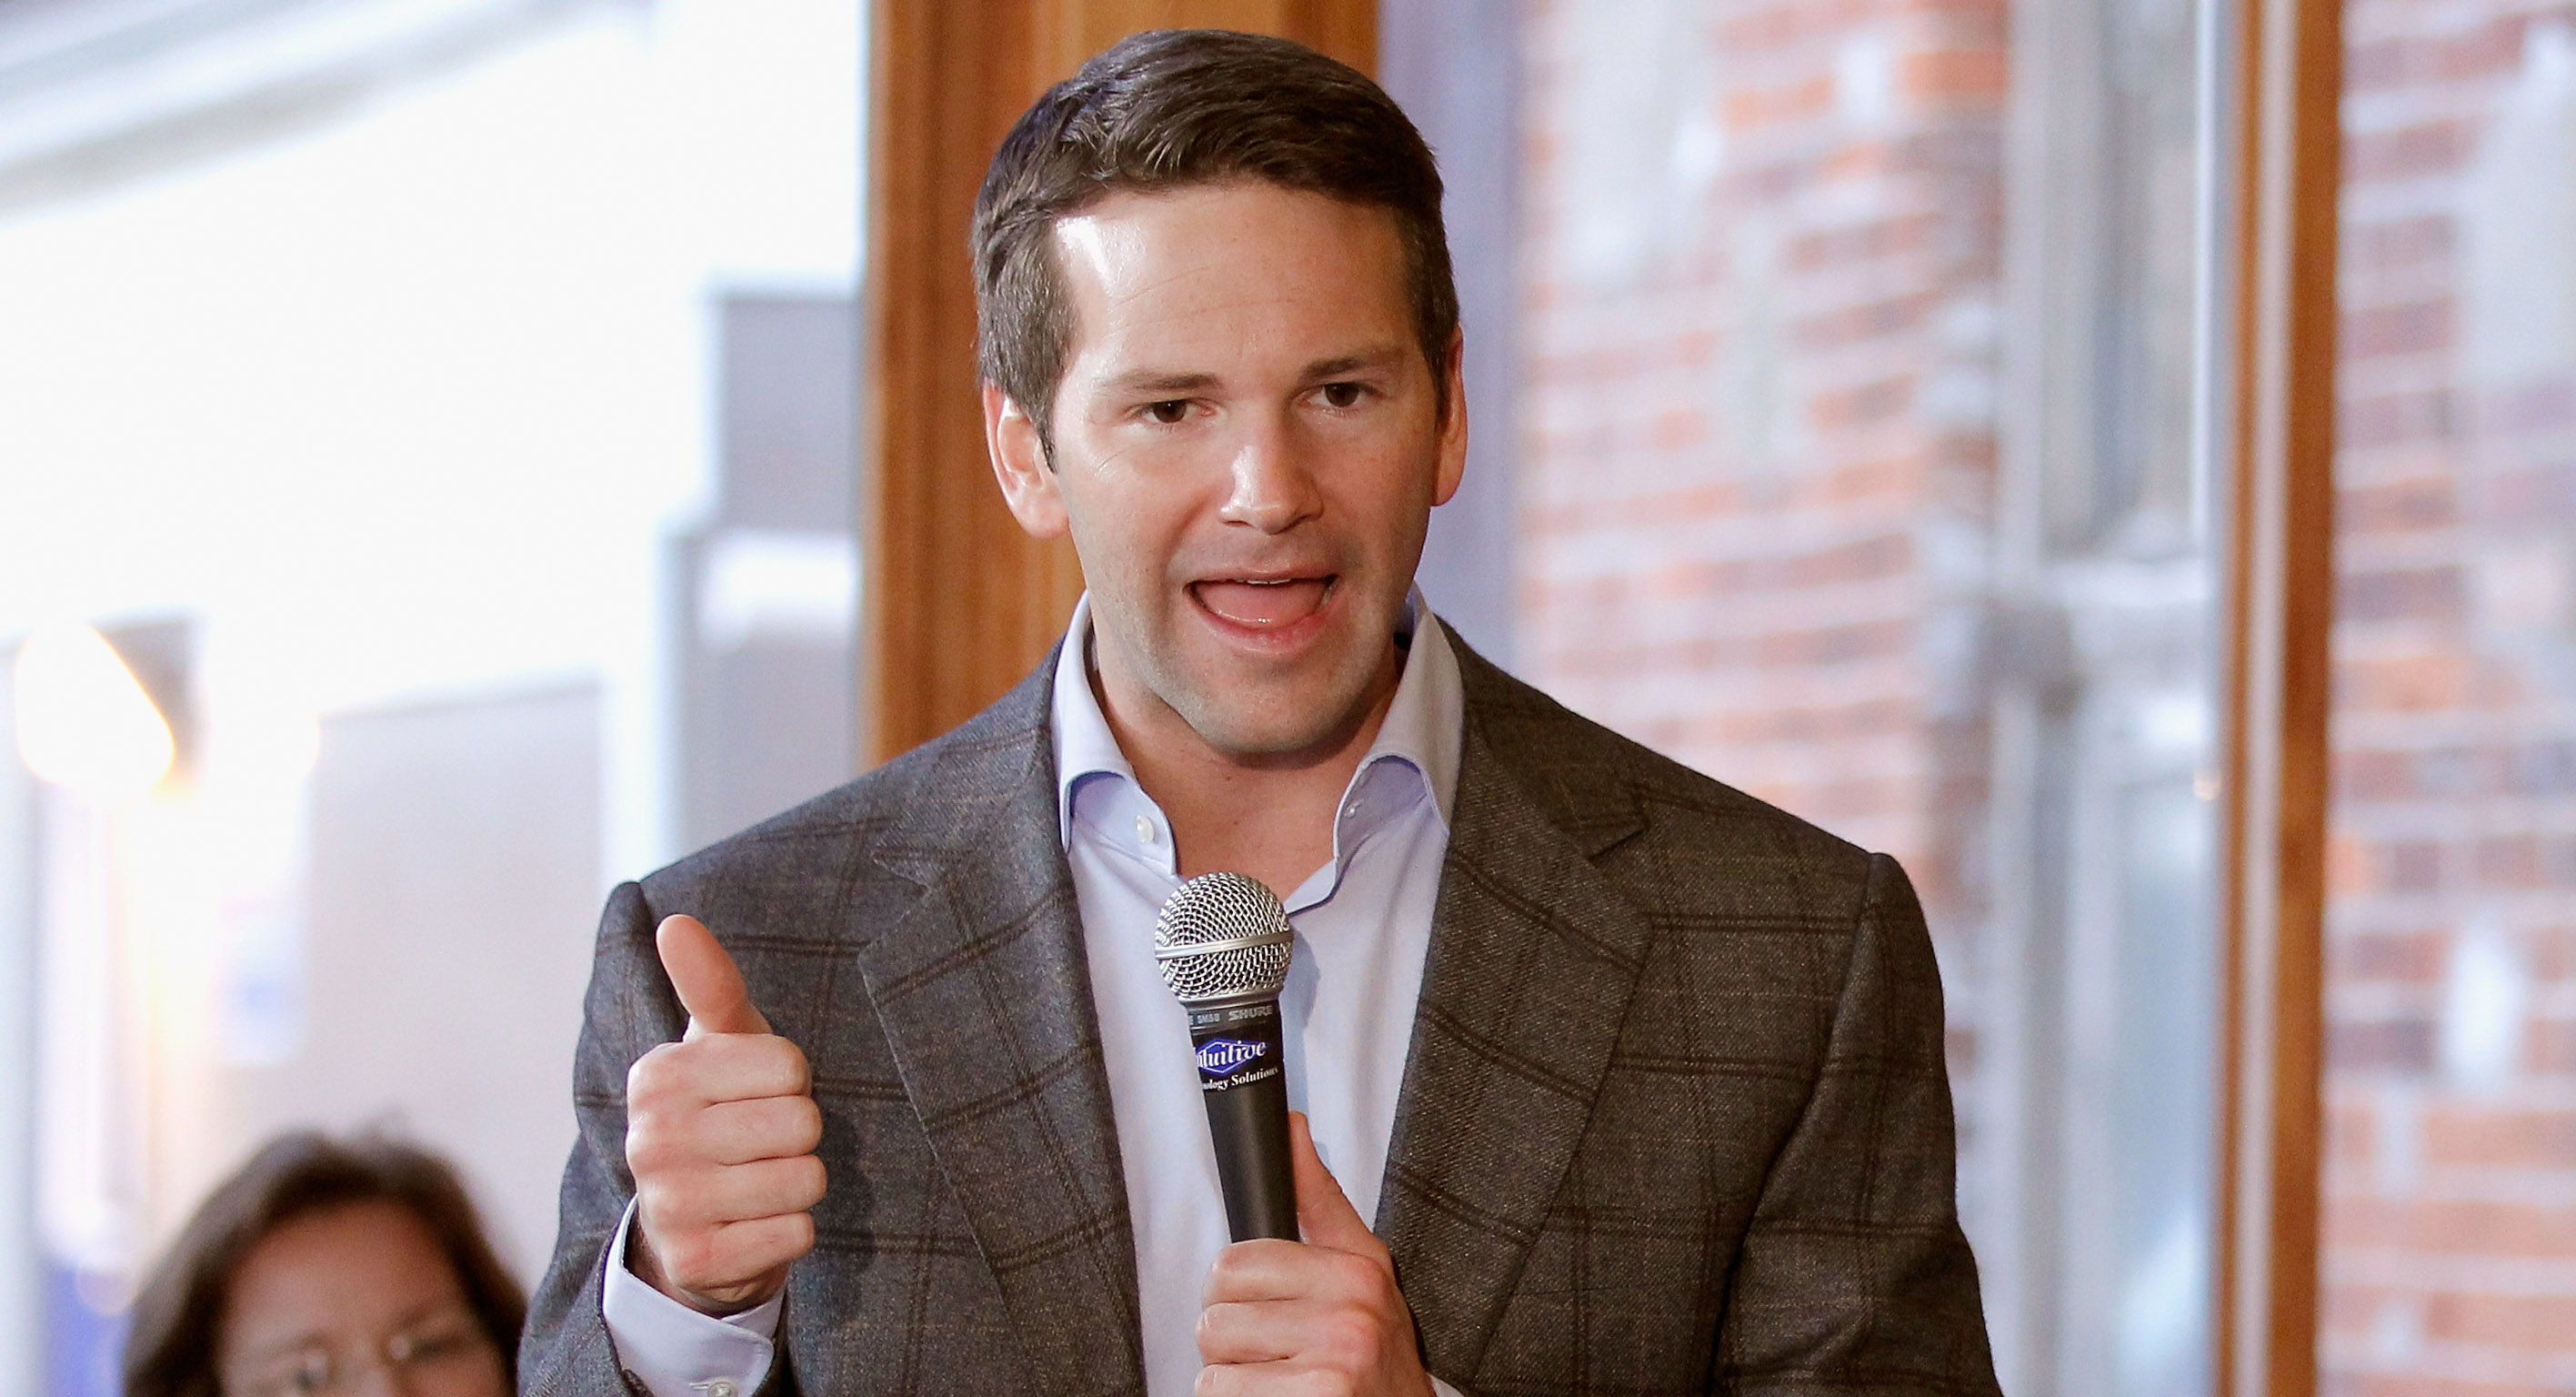 House lawyer accuses Schock prosecutors of illegally